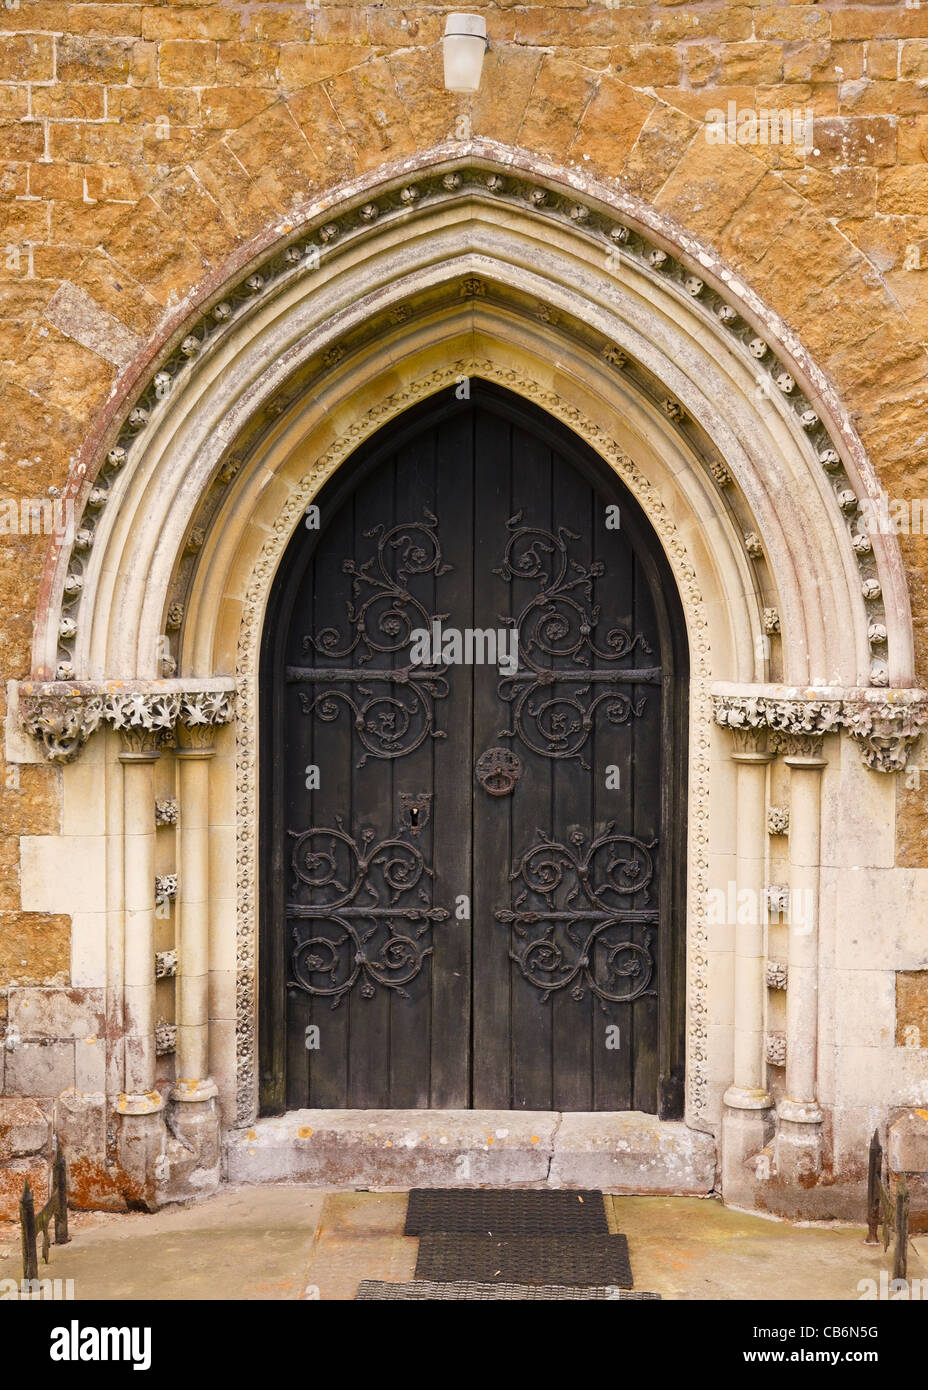 Ornate Pointed Gothic Arch Church Door With Fleuron Decorated Hinges St James Little Dalby Leicestershire England UK